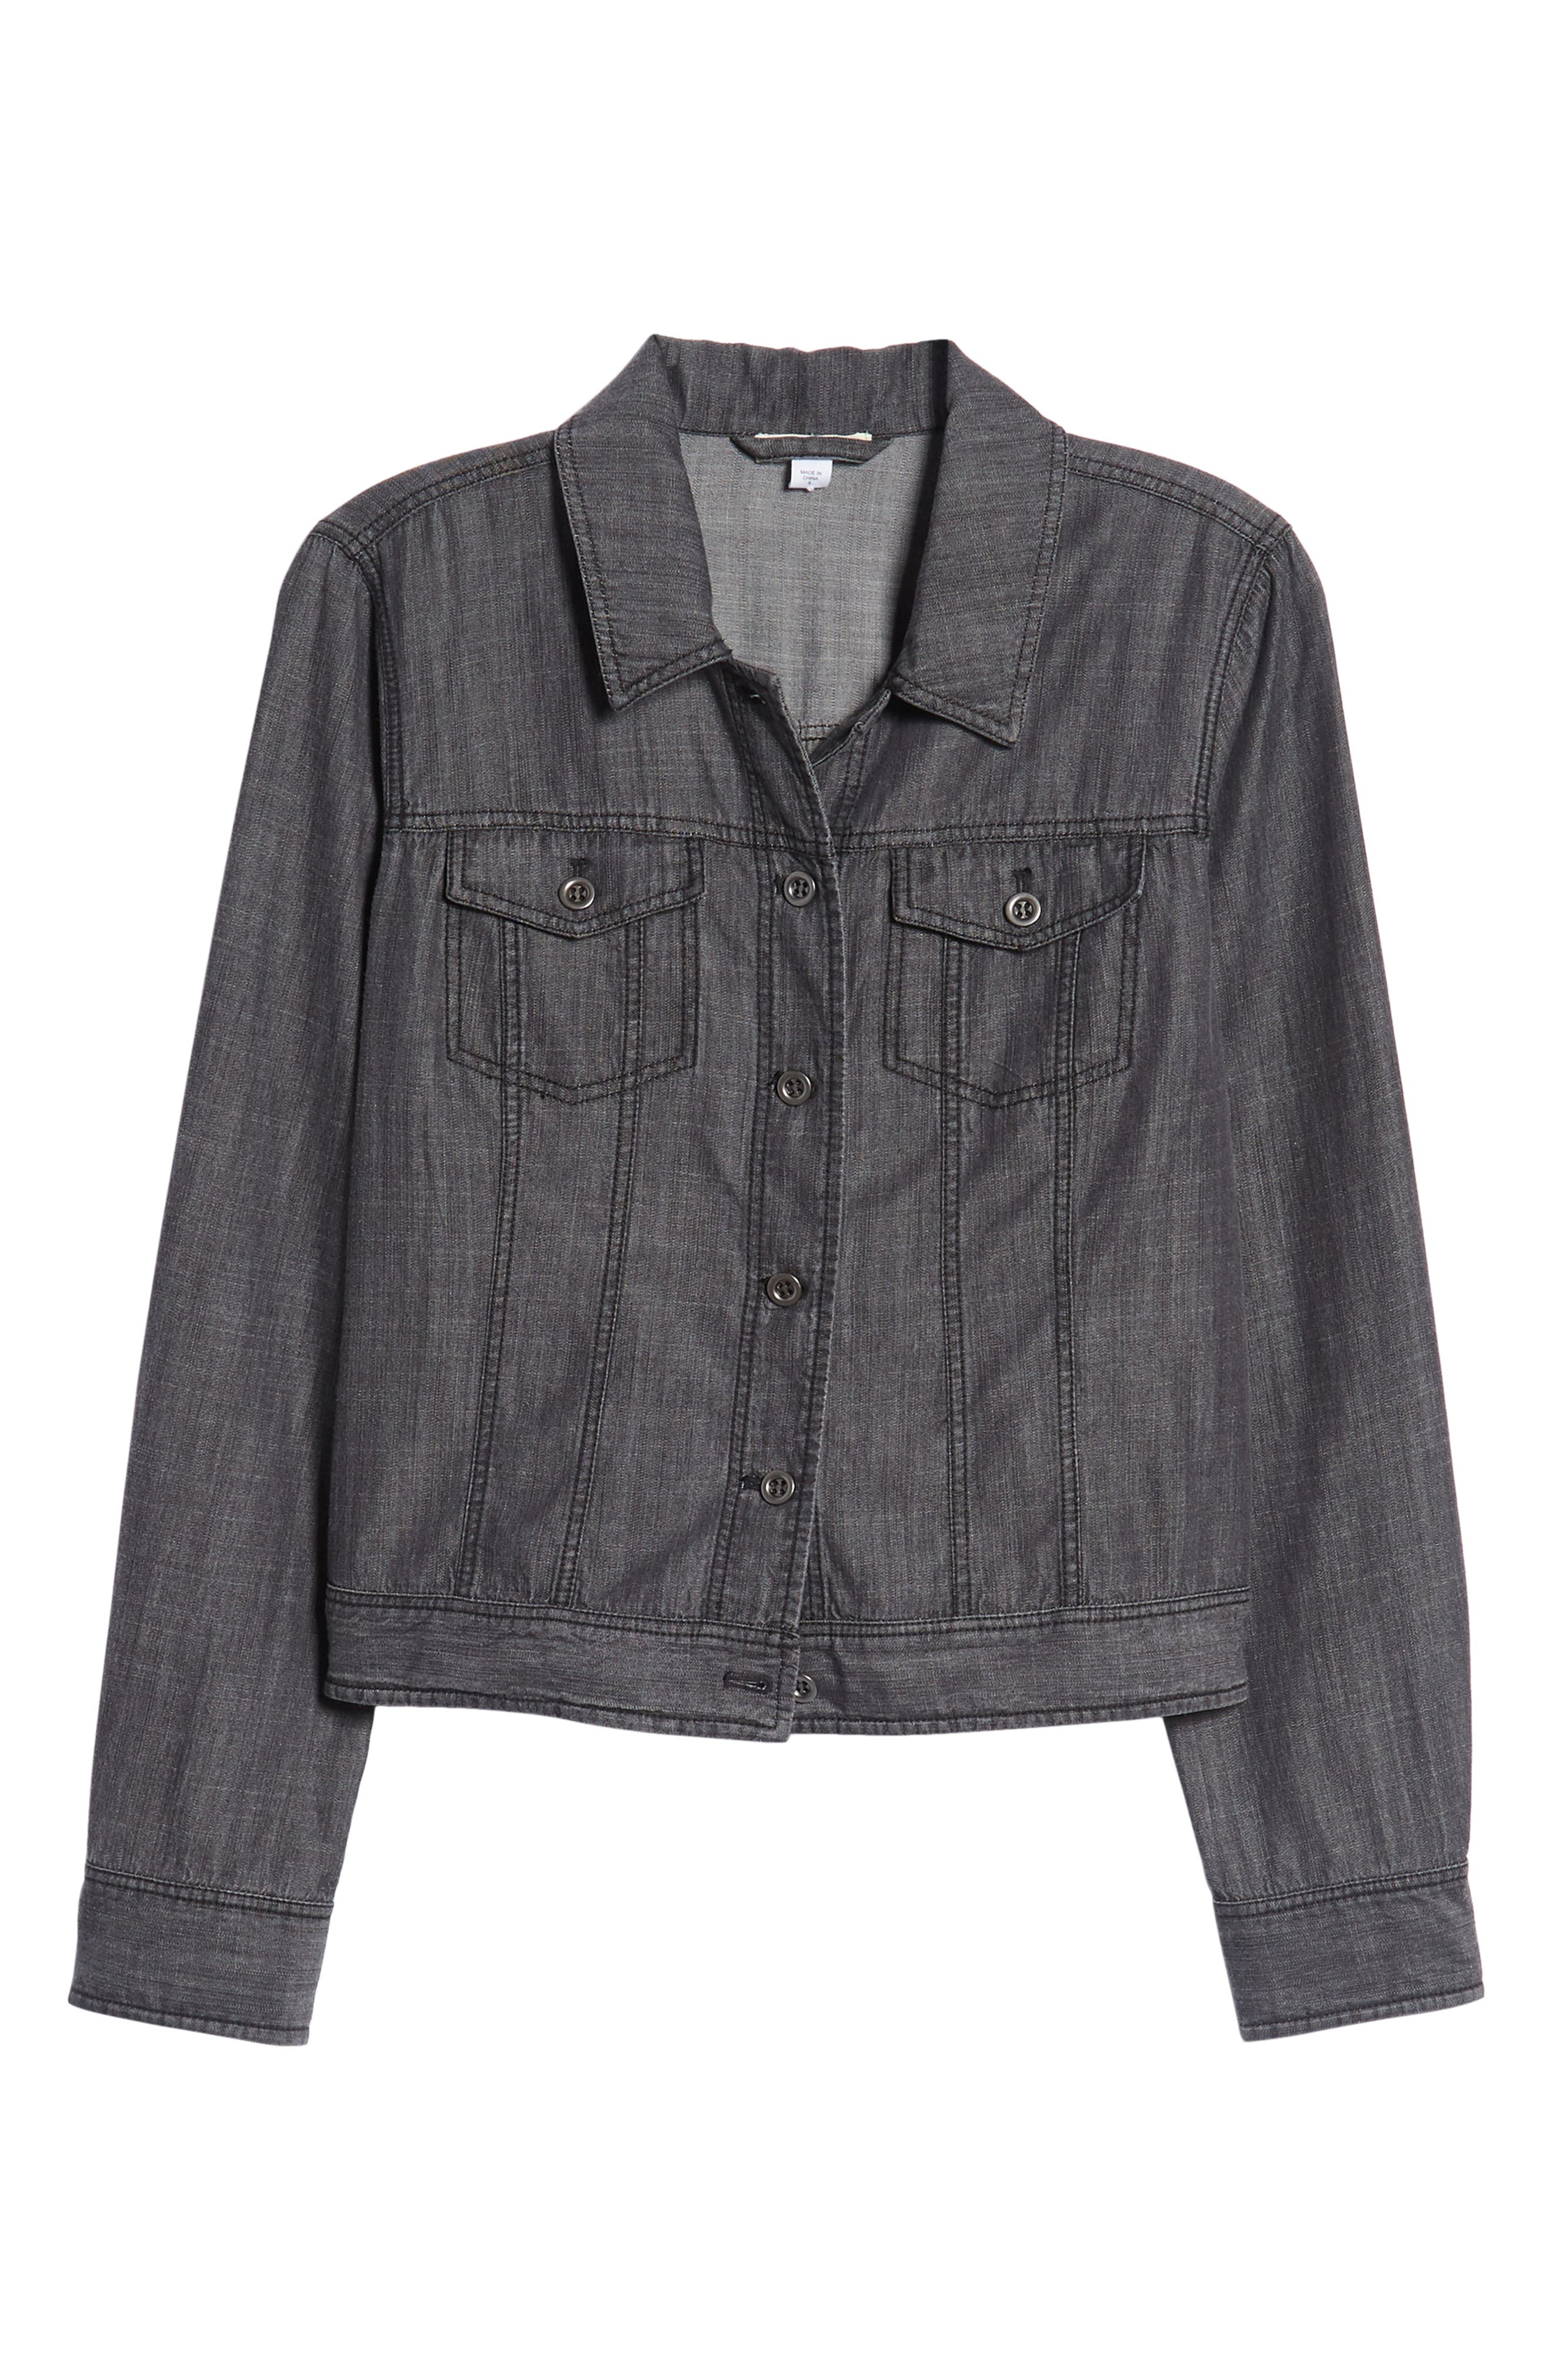 Crop Denim Jacket,                             Alternate thumbnail 6, color,                             001